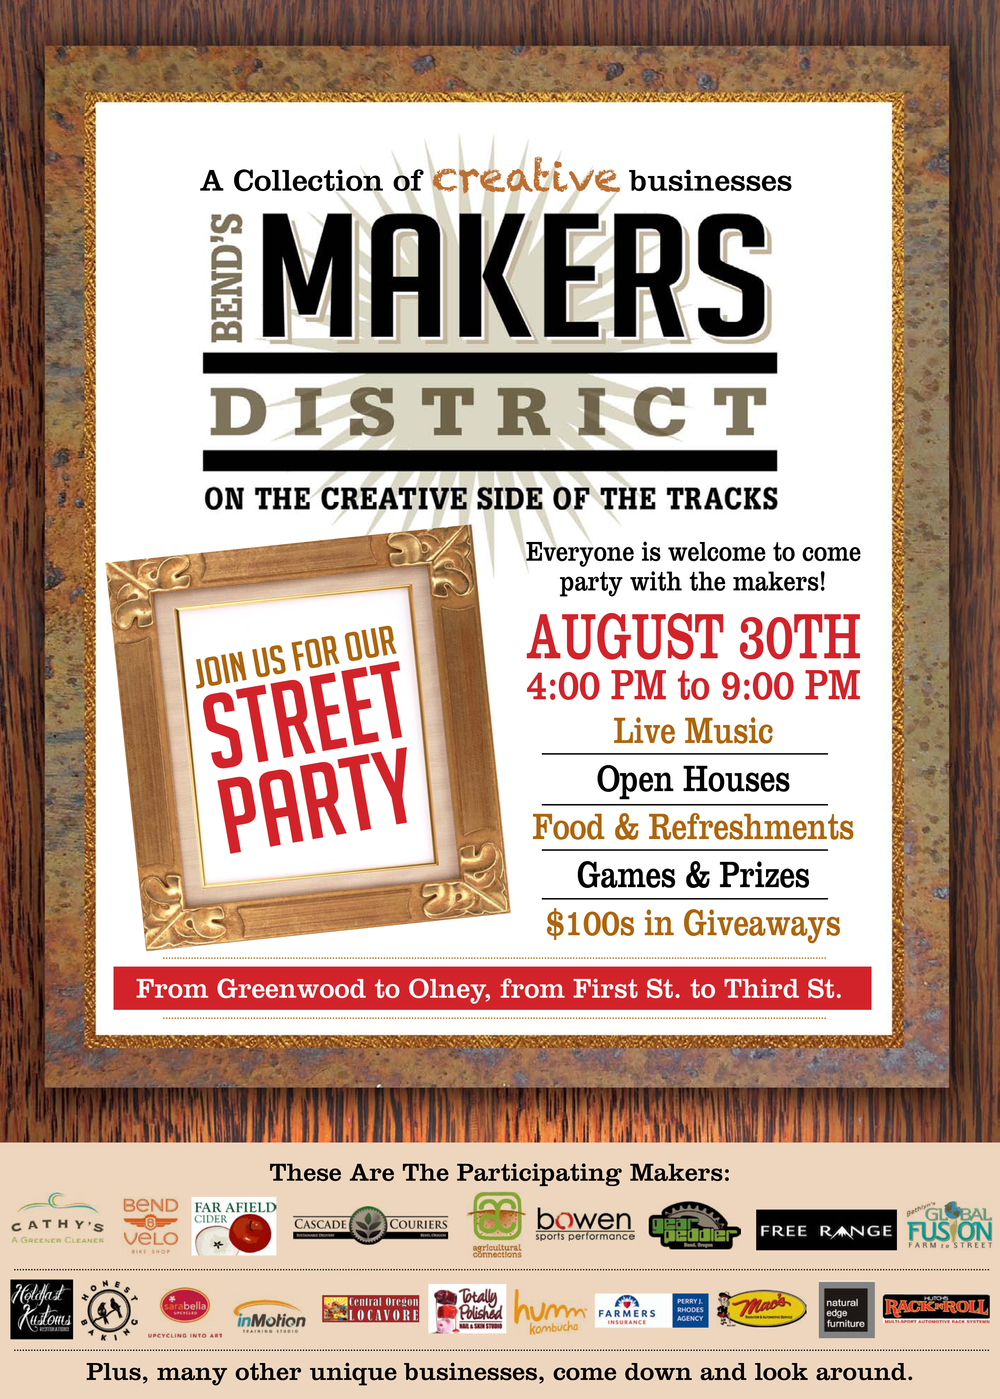 BendsMakersDistrict_Event_LaborDay